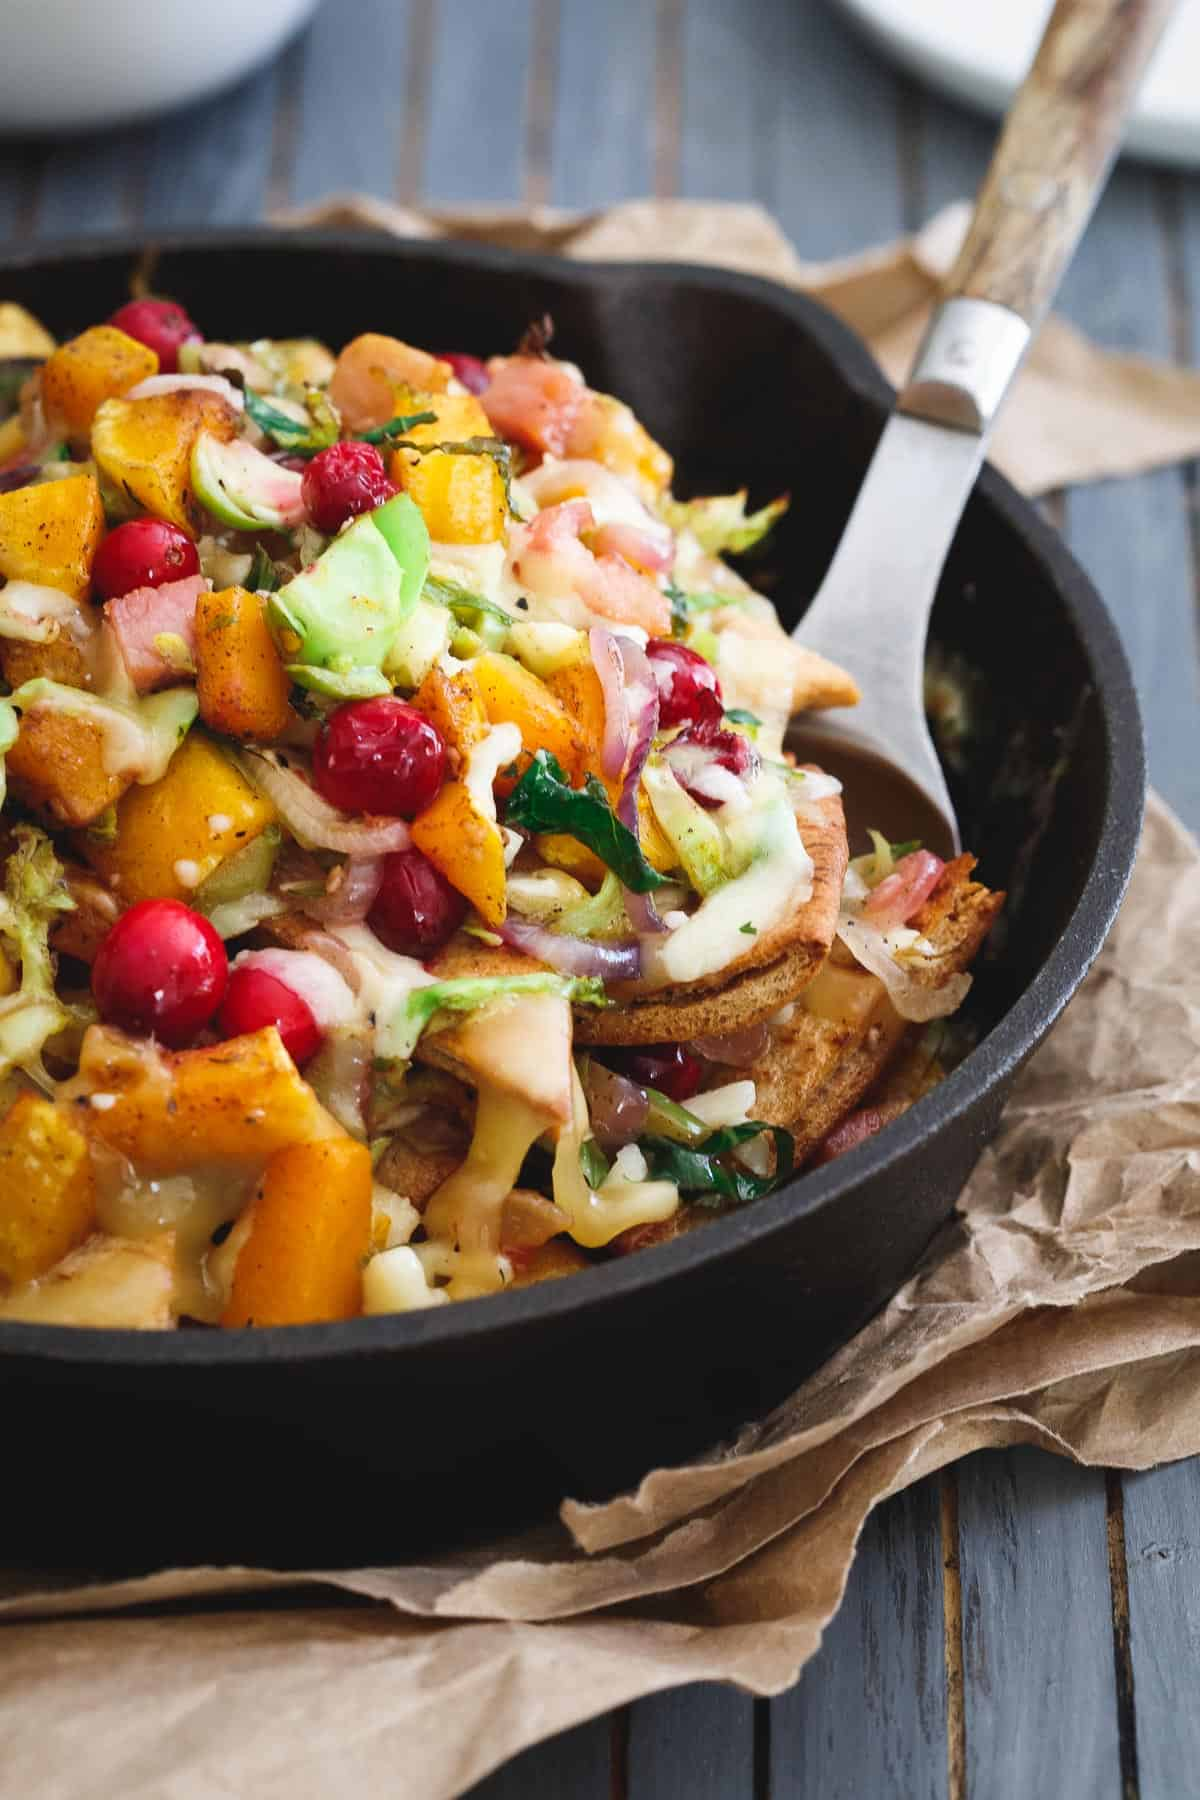 Butternut squash pita nachos packed with tons of fall flavor and melted cheddar and gouda.